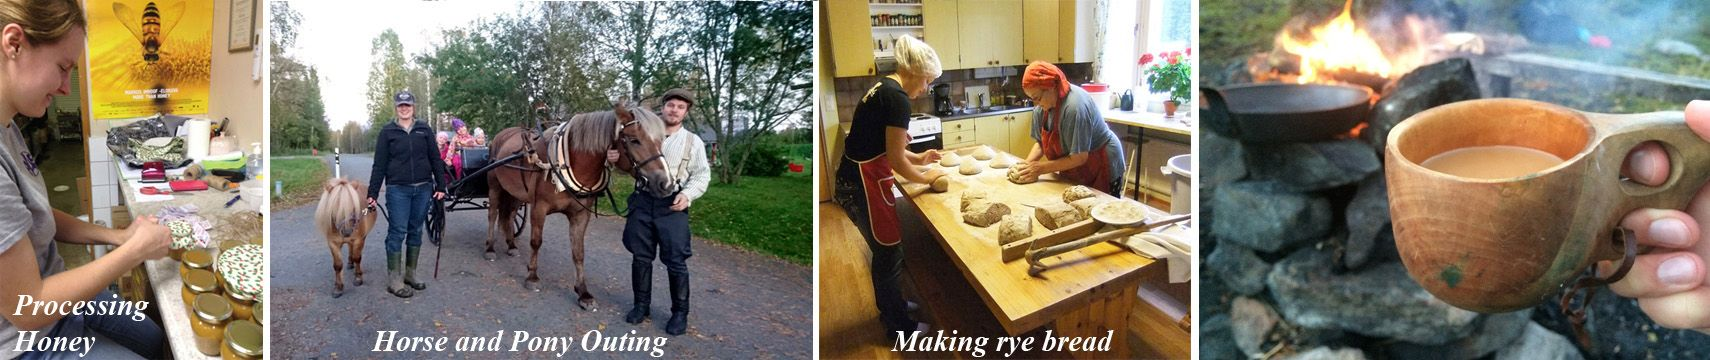 Processing honey, horses, baking and more in Finland